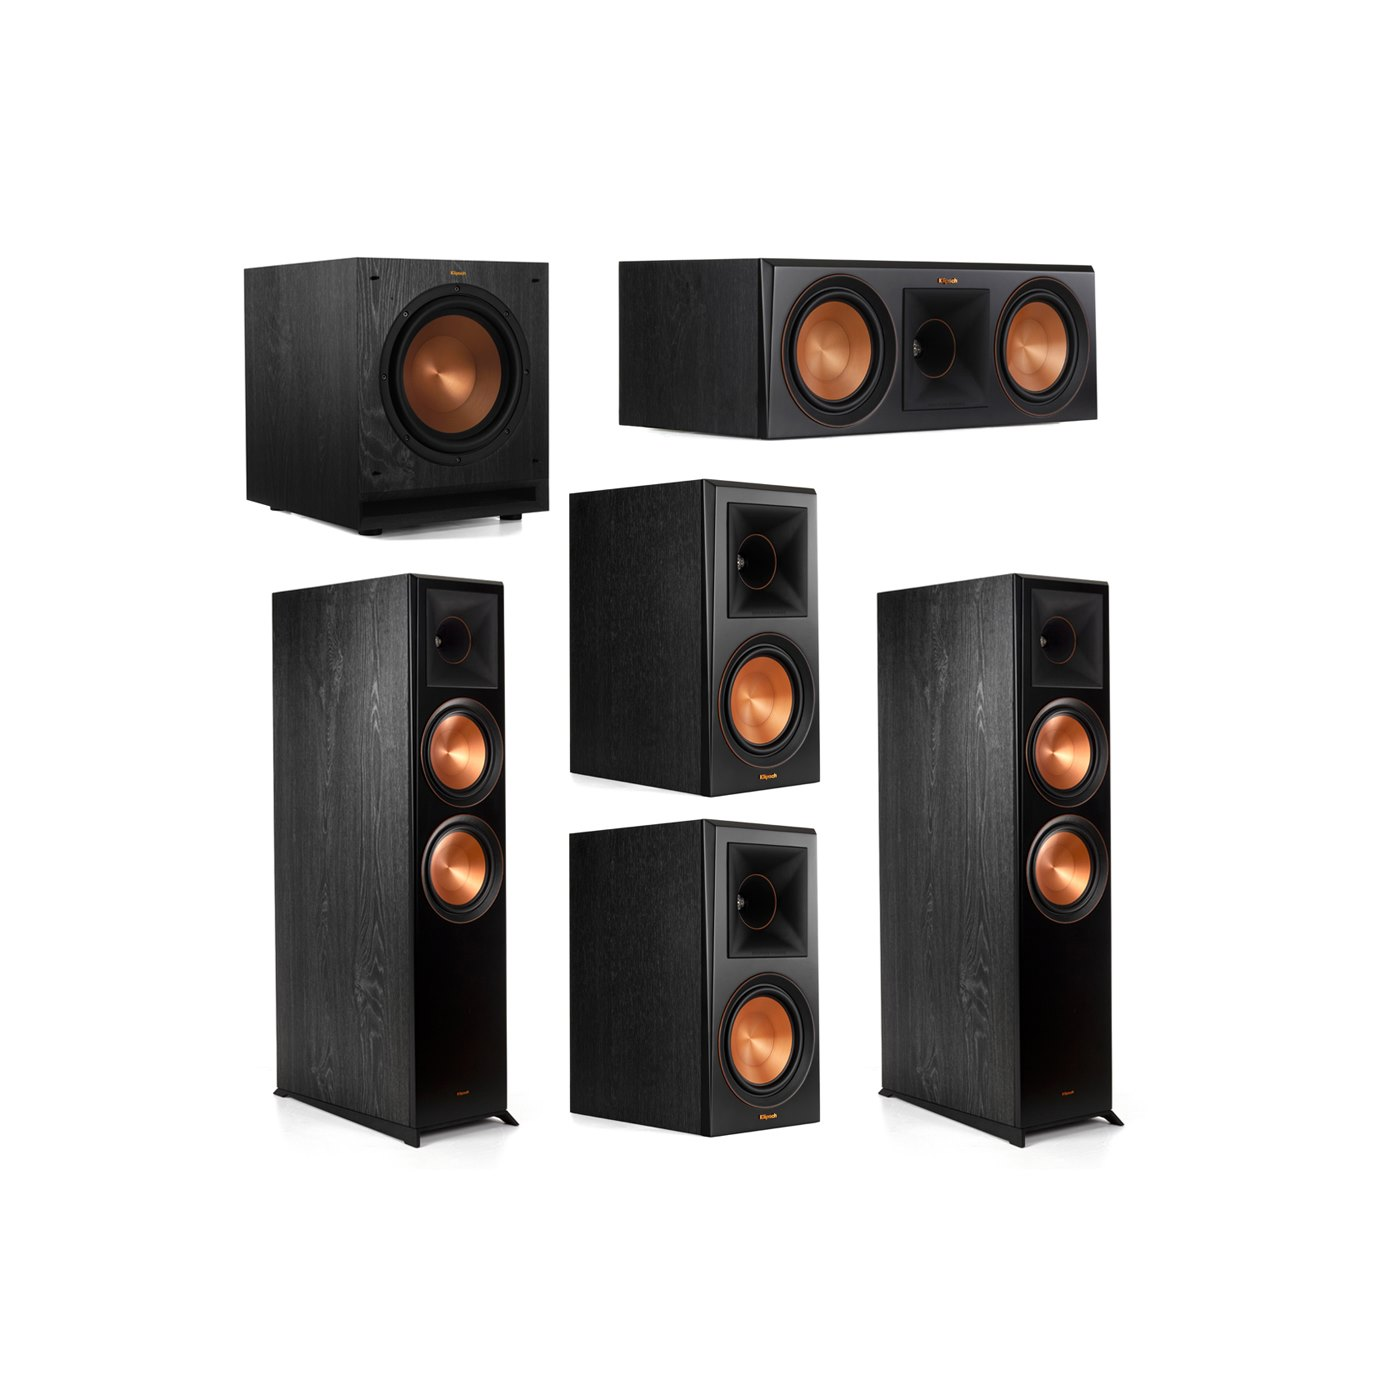 Klipsch 5.1.2 System - 2 RP-8060FA Dolby Atmos Speakers, 1 RP-600C, 2 RP-600M Speakers, 1 SPL-100